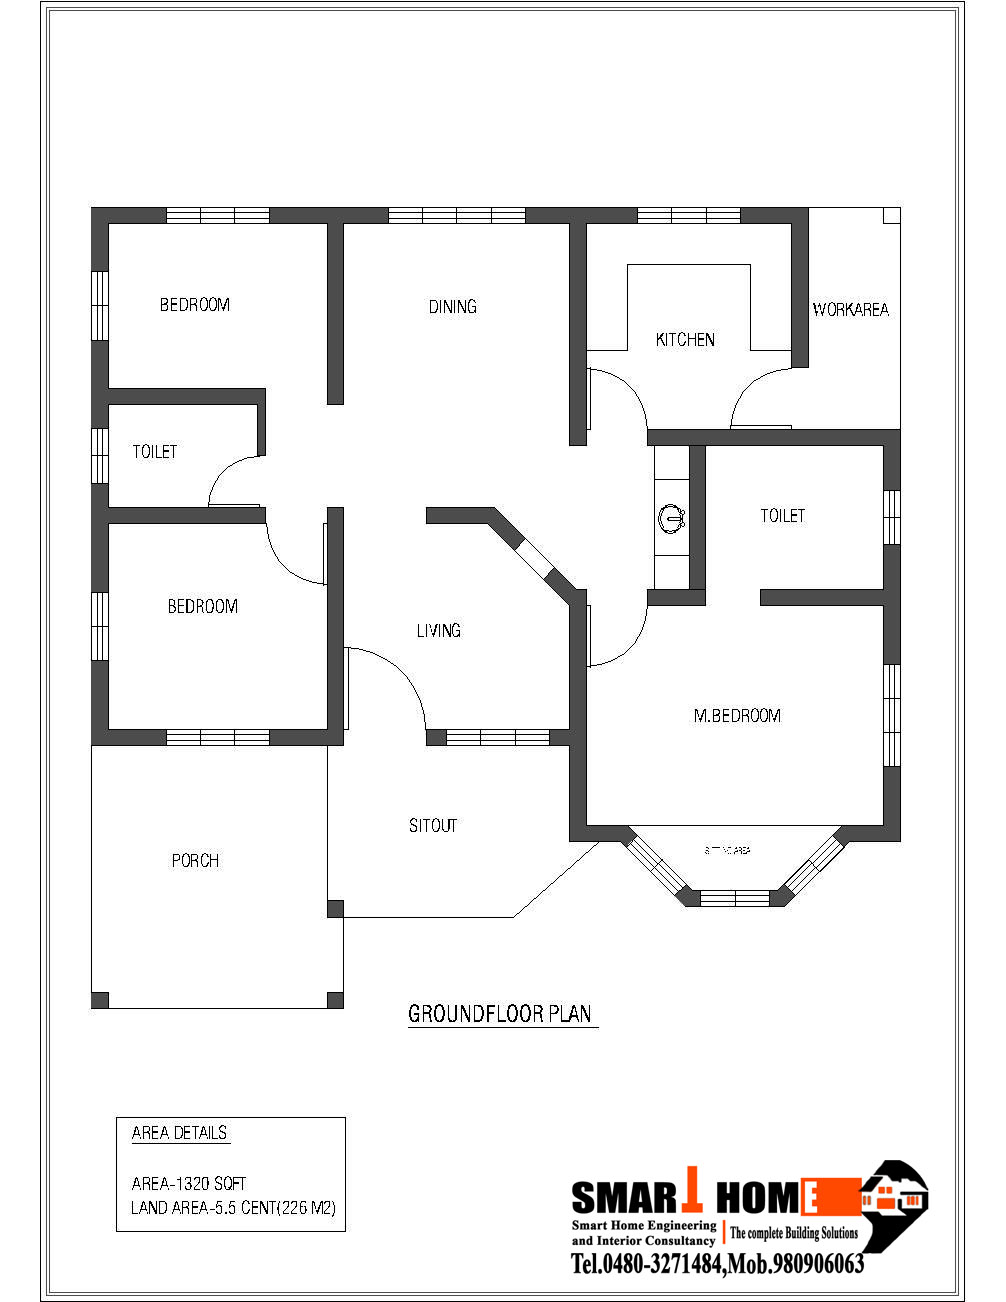 House photos and plans may 2012 for Www house plans com